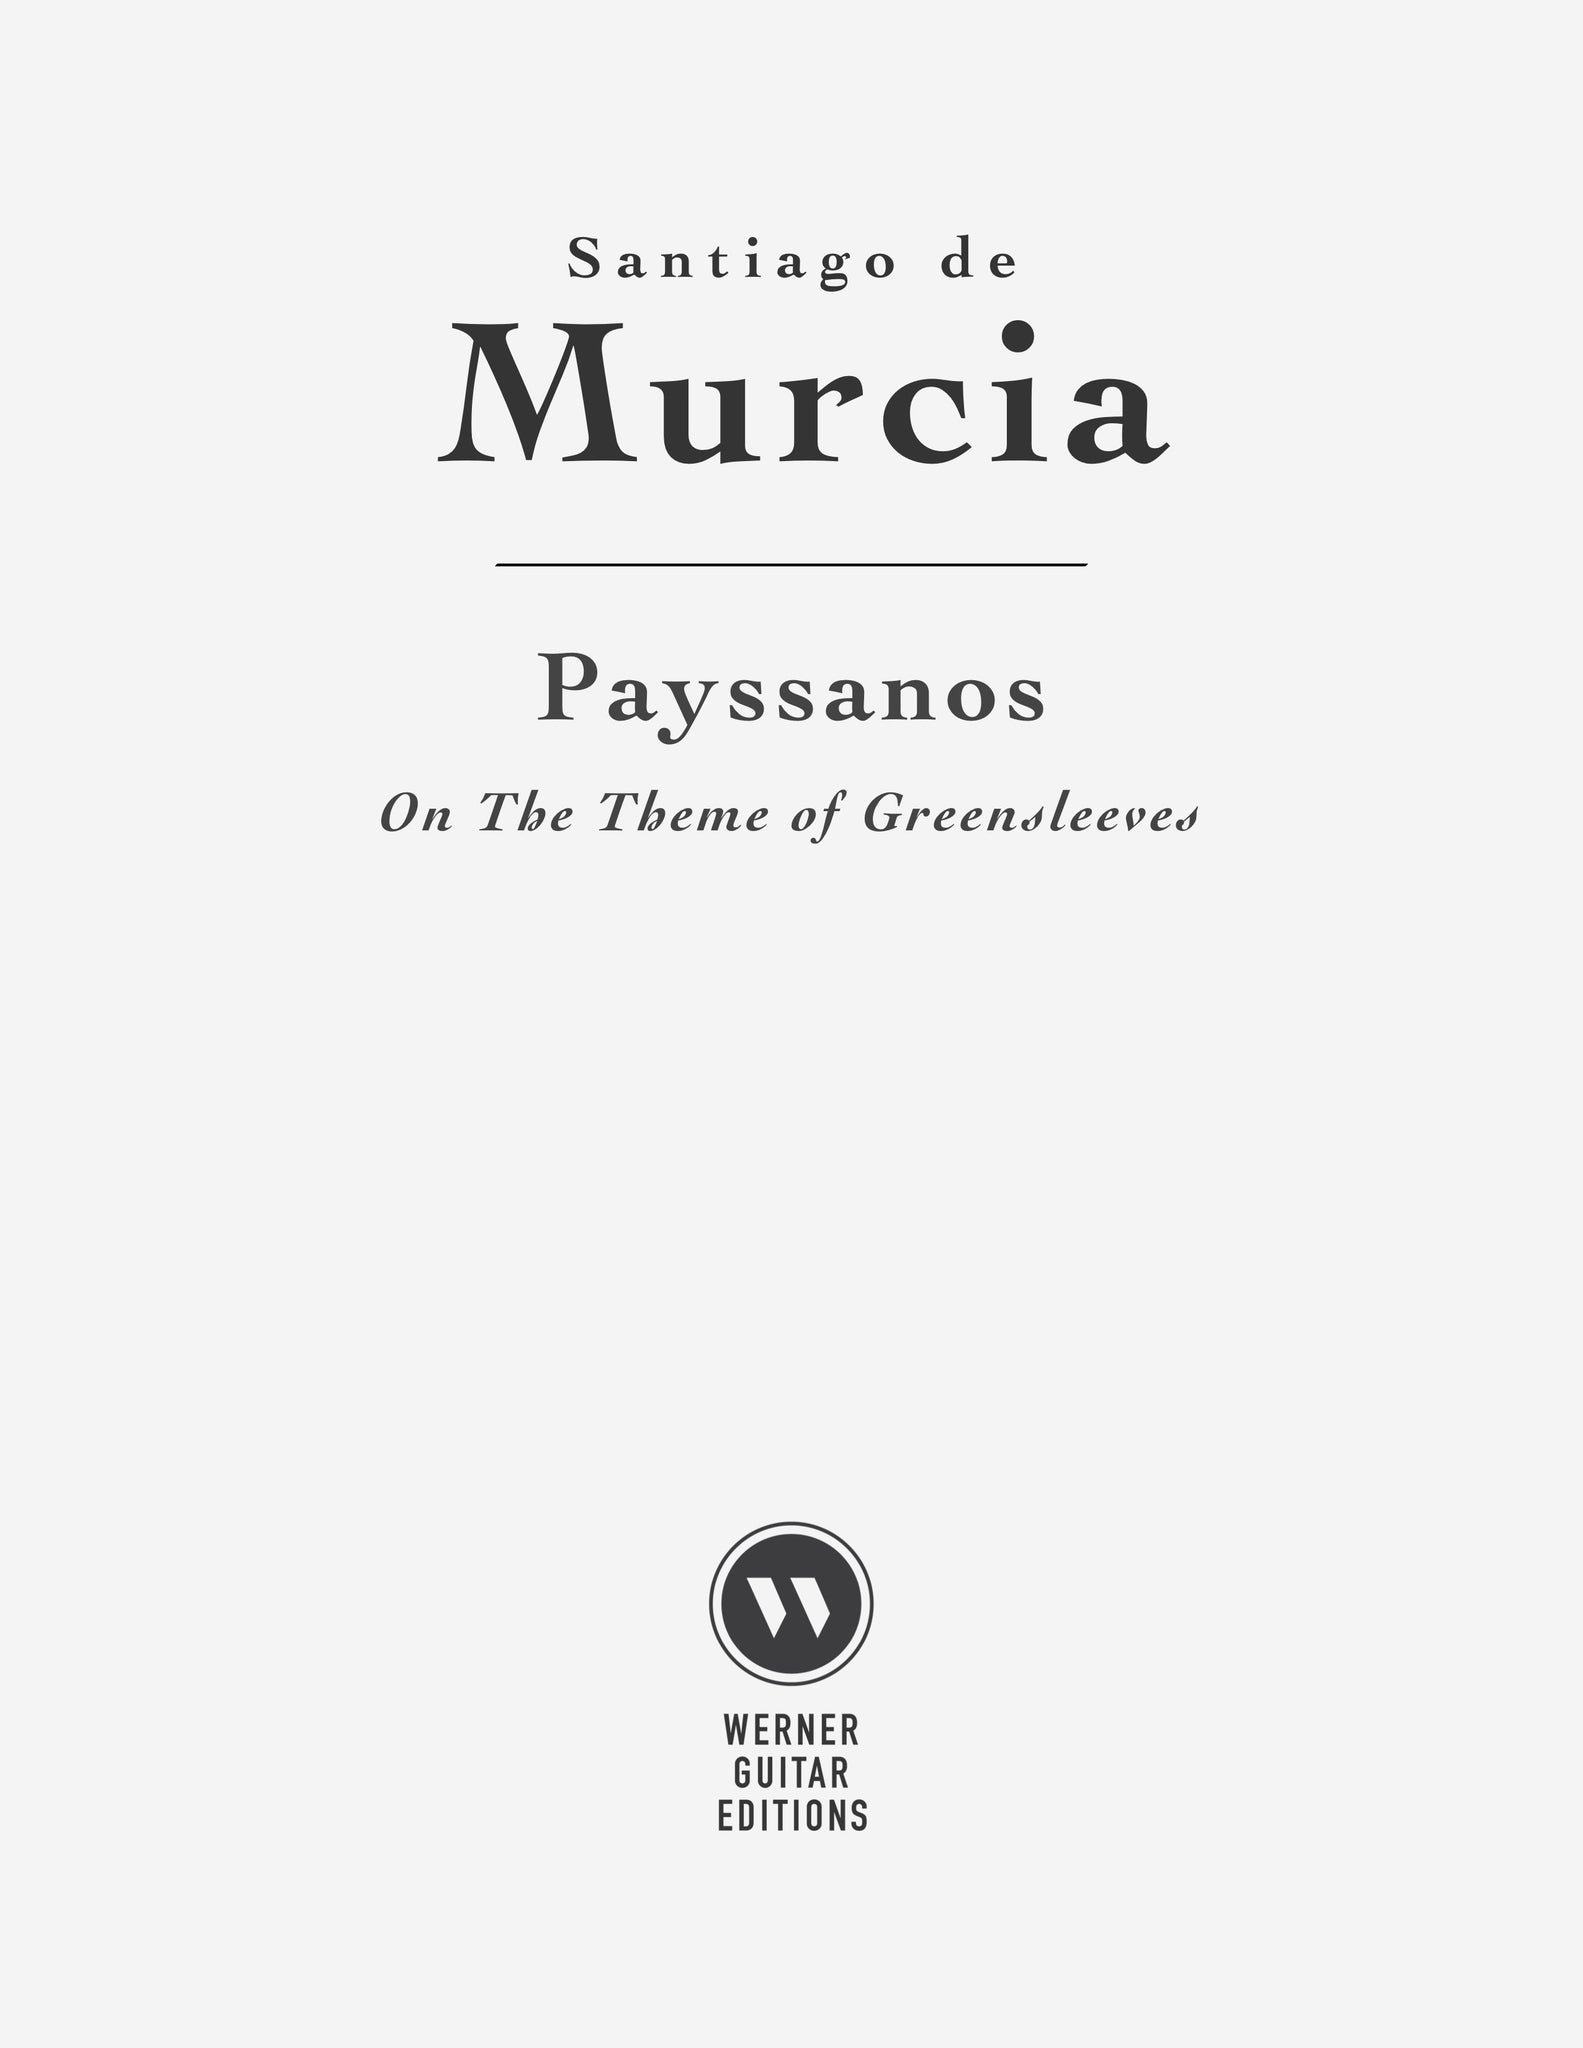 Payssanos (Greensleeves) by Santiago de Murcia - Sheet Music or Tab for Guitar